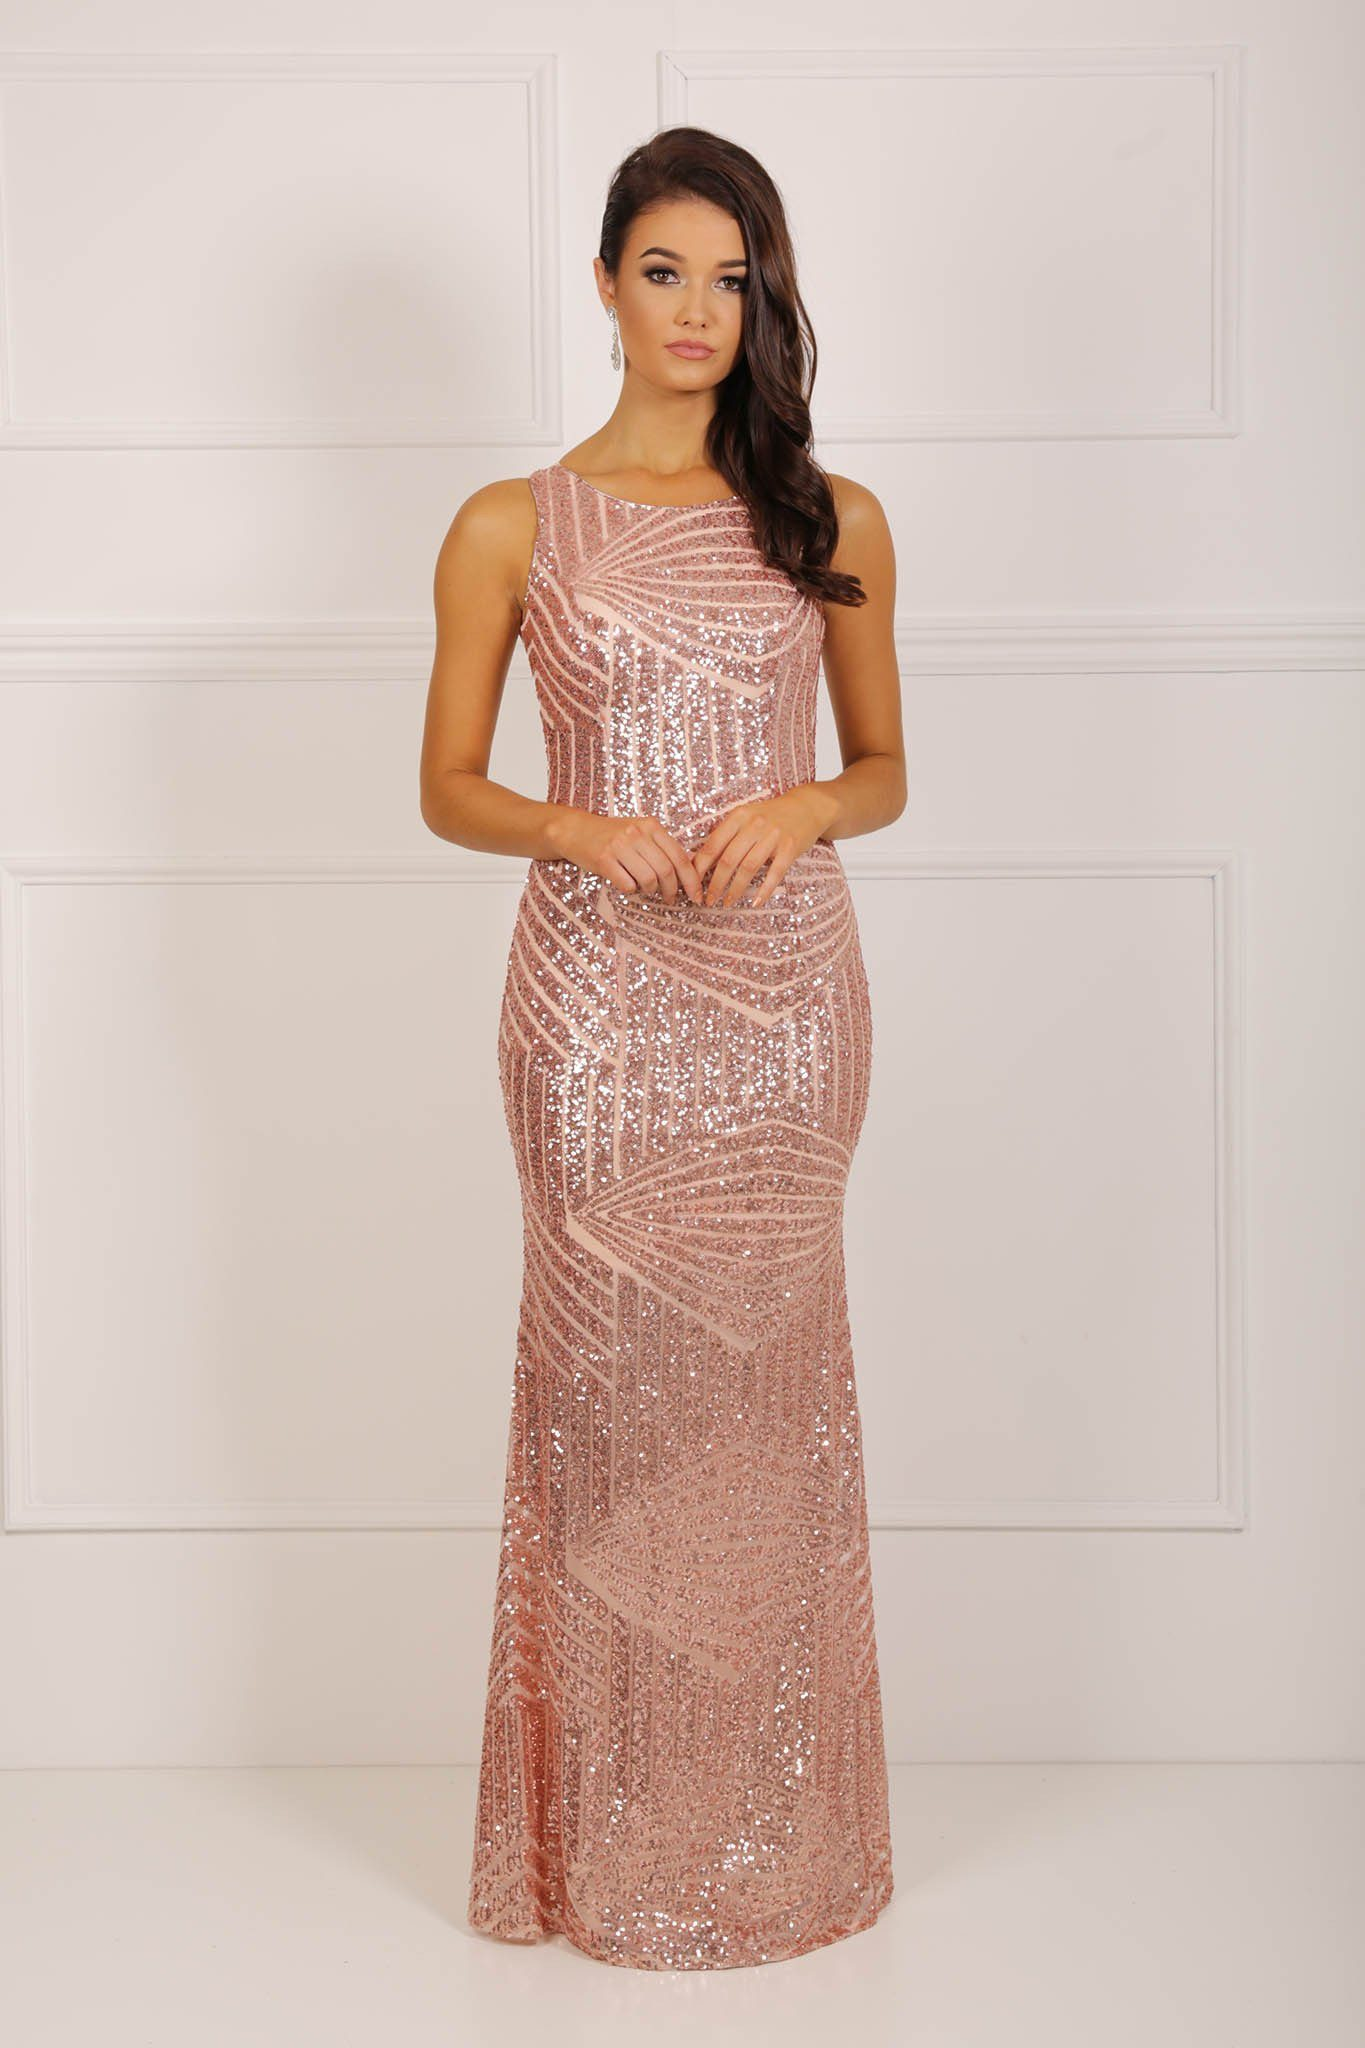 Rose gold sequin sleeveless maxi dress scoop neckline hollow back cutout design